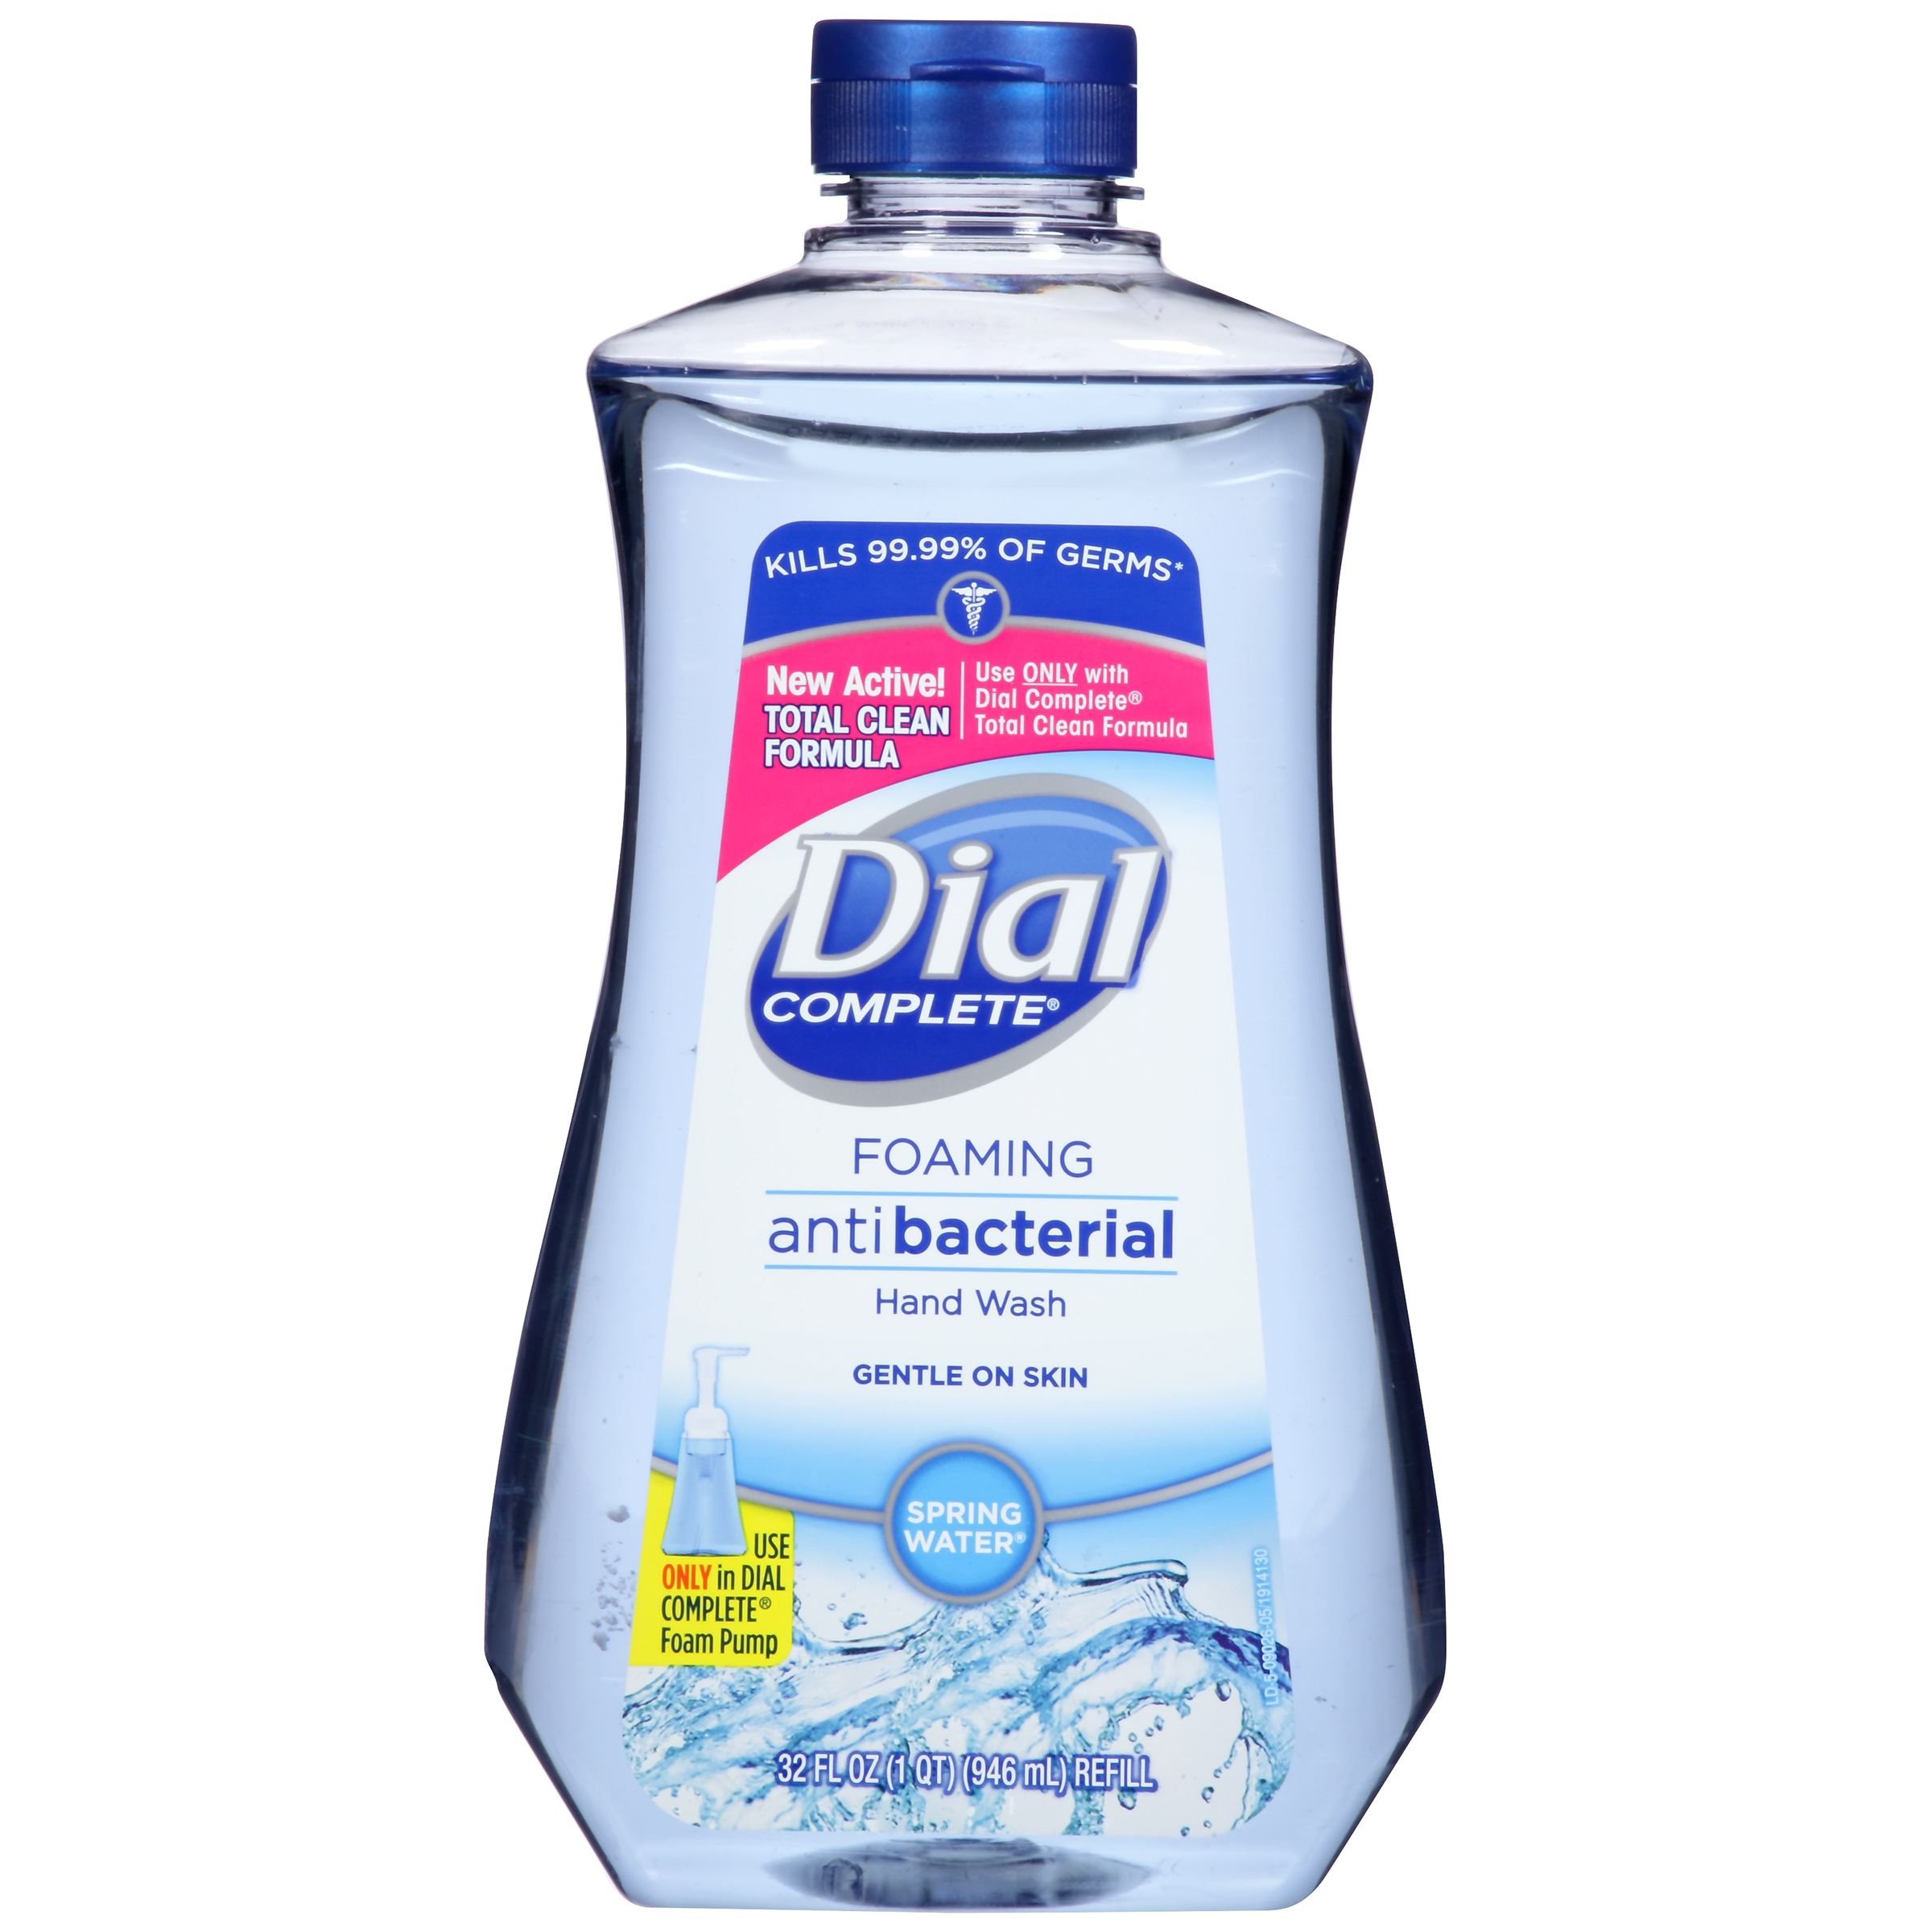 (2 pack) Dial Complete Antibacterial Foaming Hand Wash Refill, Spring Water, 32 Oz